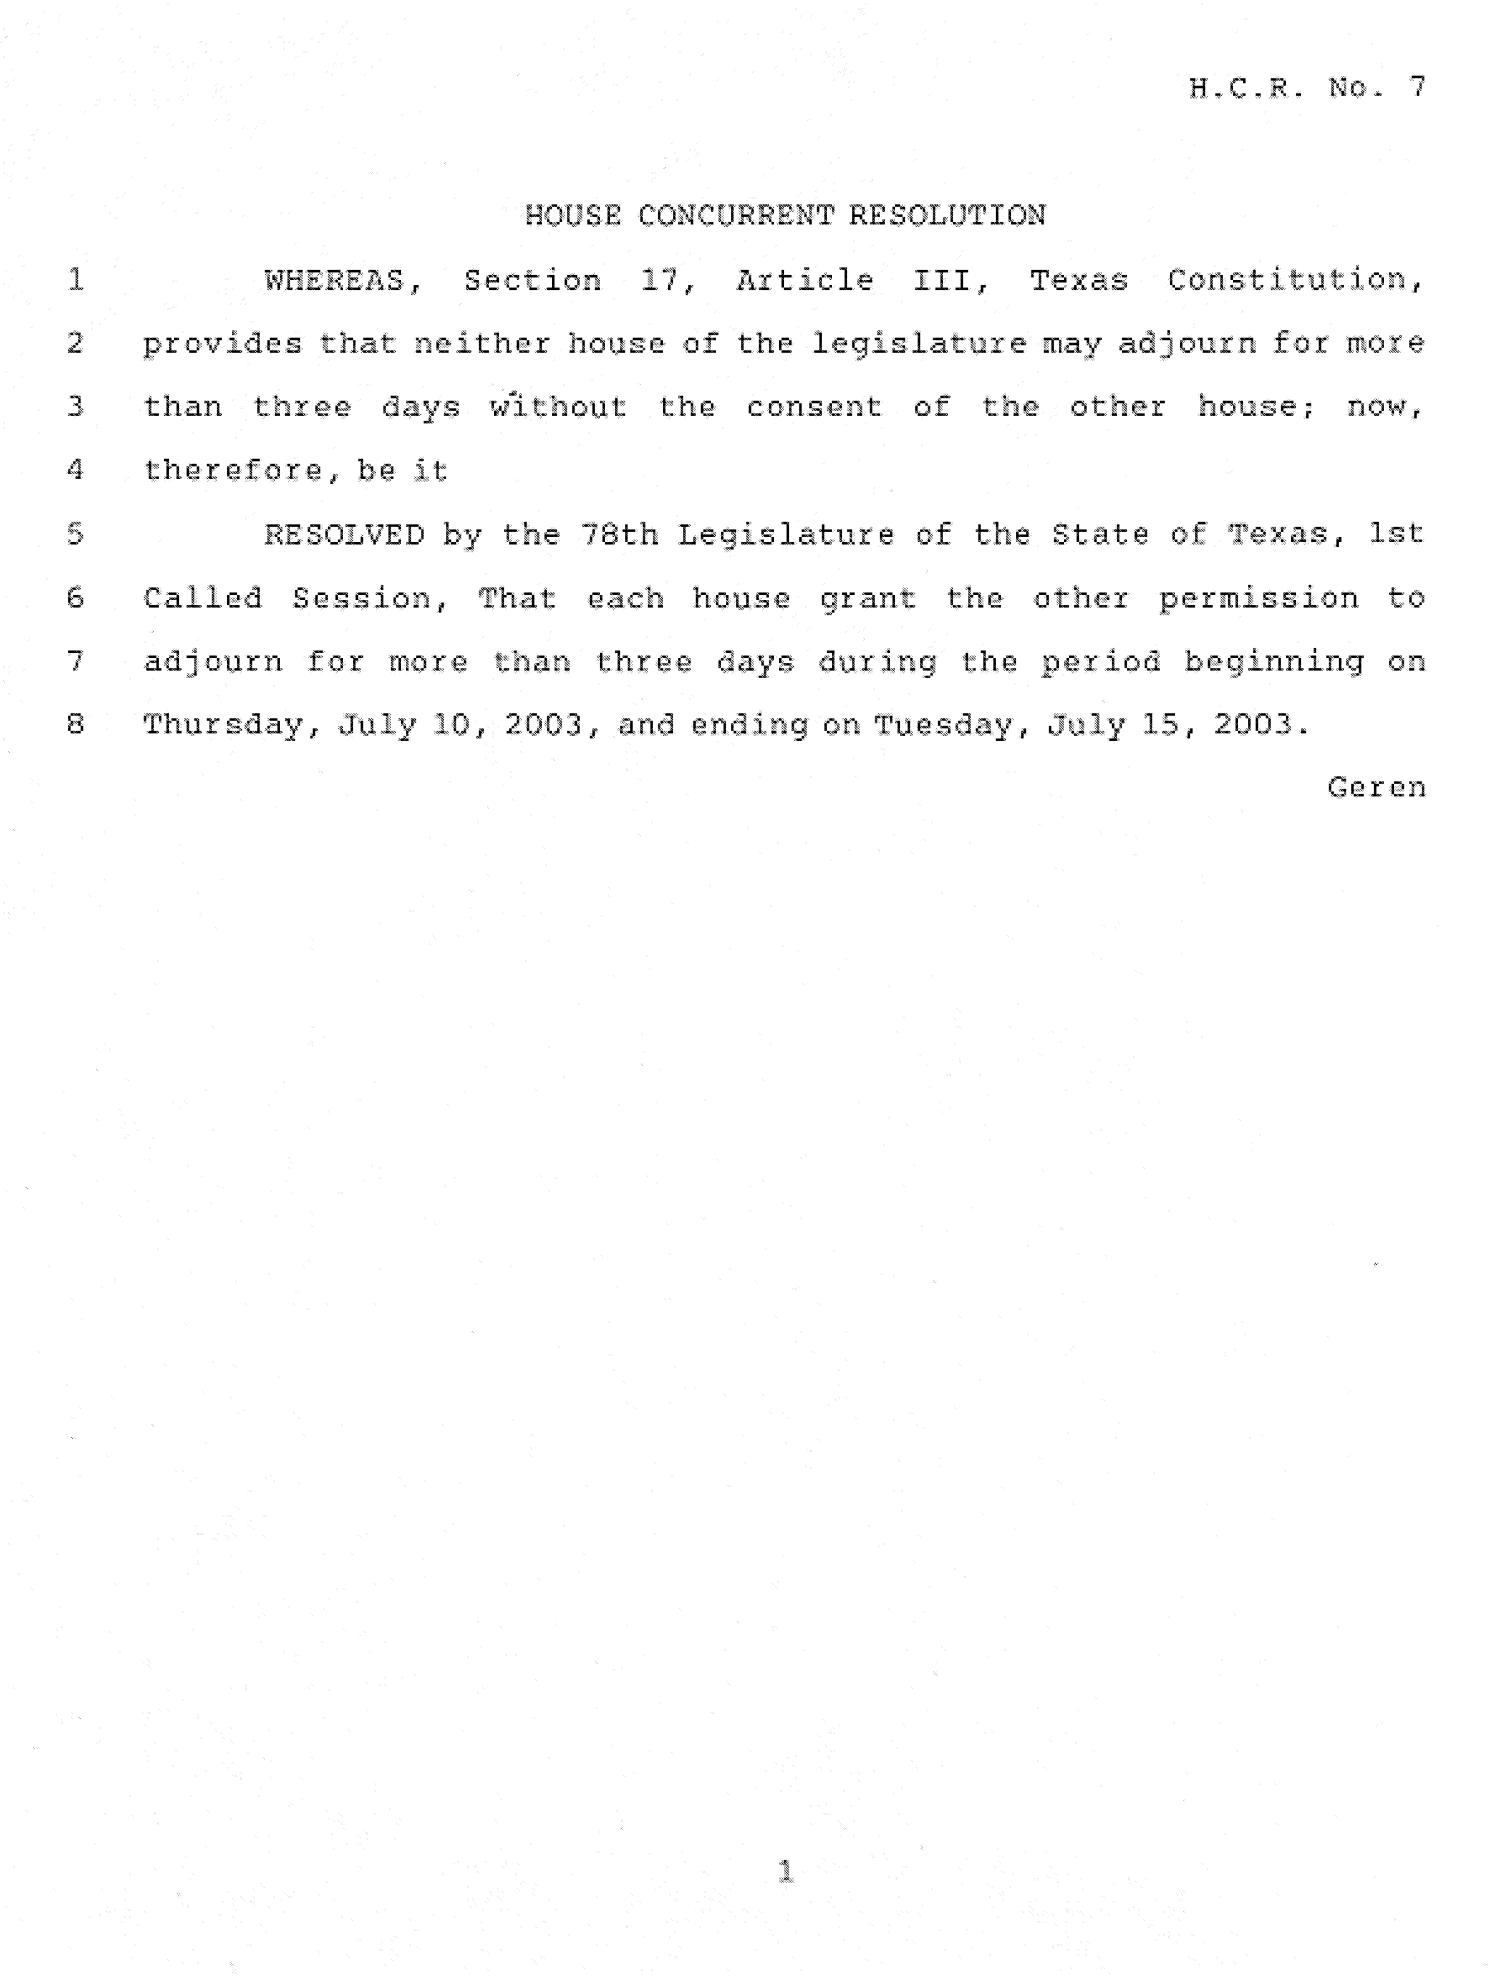 78th Texas Legislature, First Called Session, House Concurrent Resolution 7                                                                                                      [Sequence #]: 1 of 2